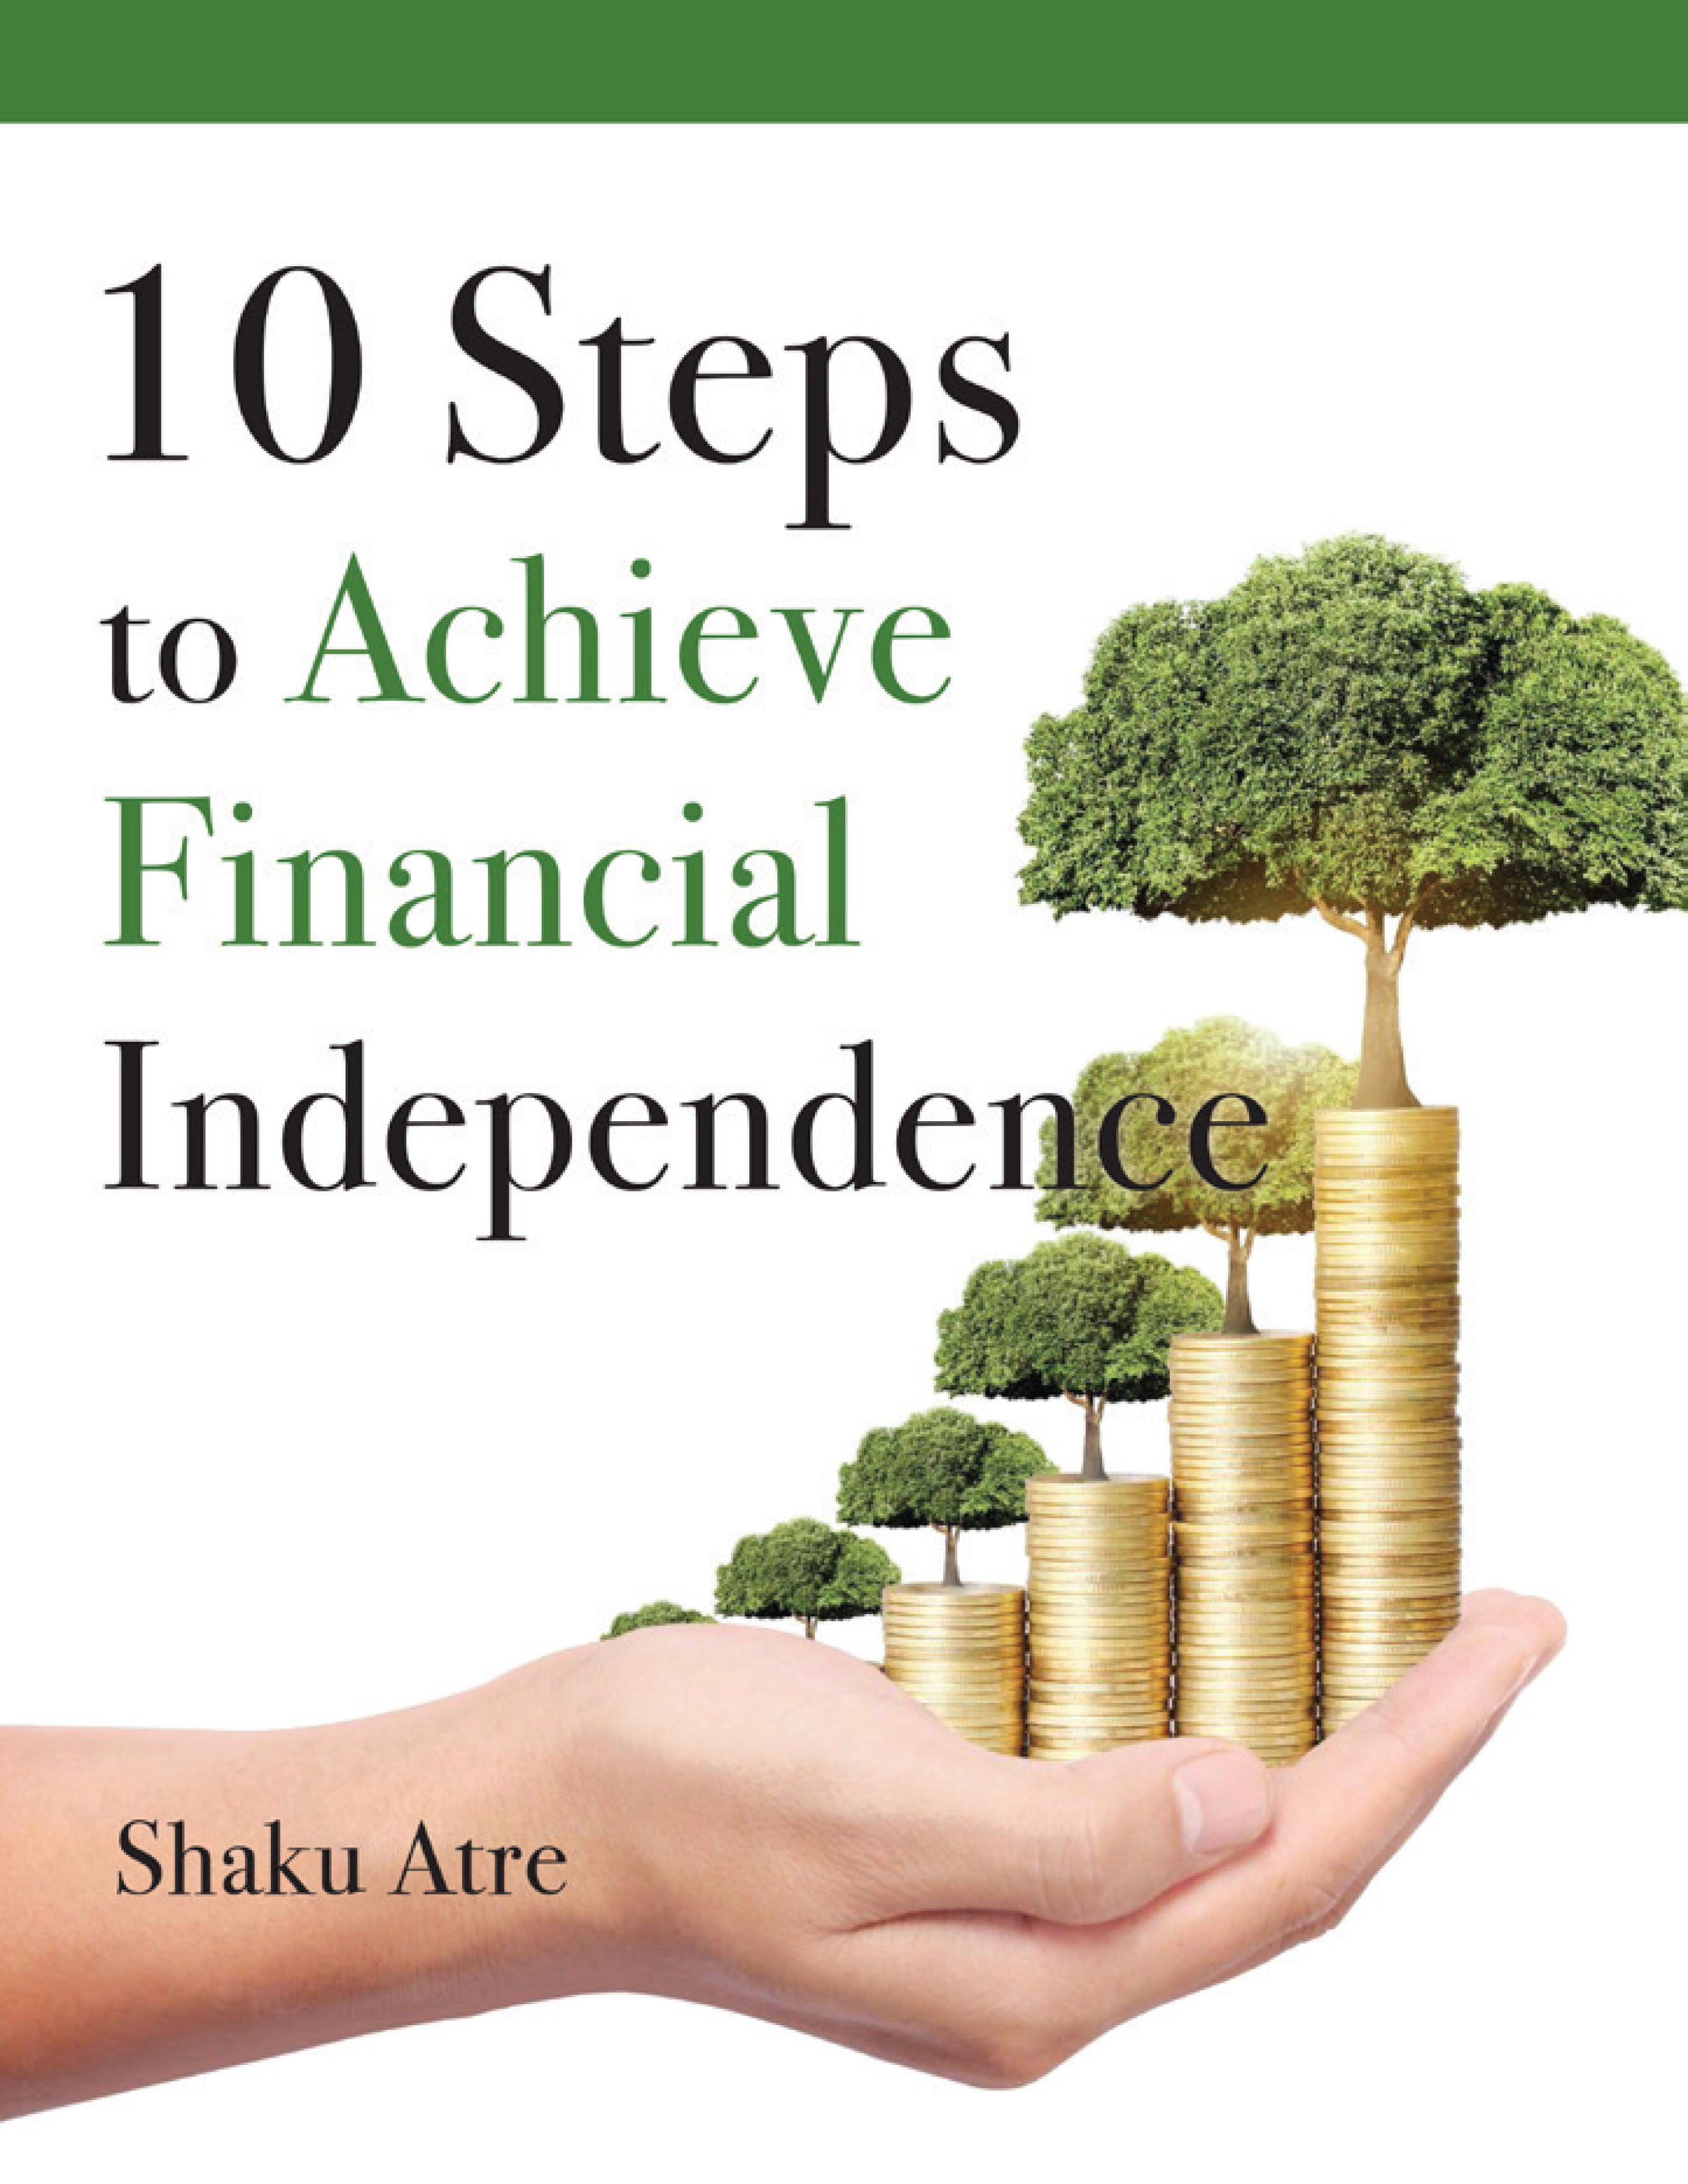 10 Steps to Achieve Financial Independence